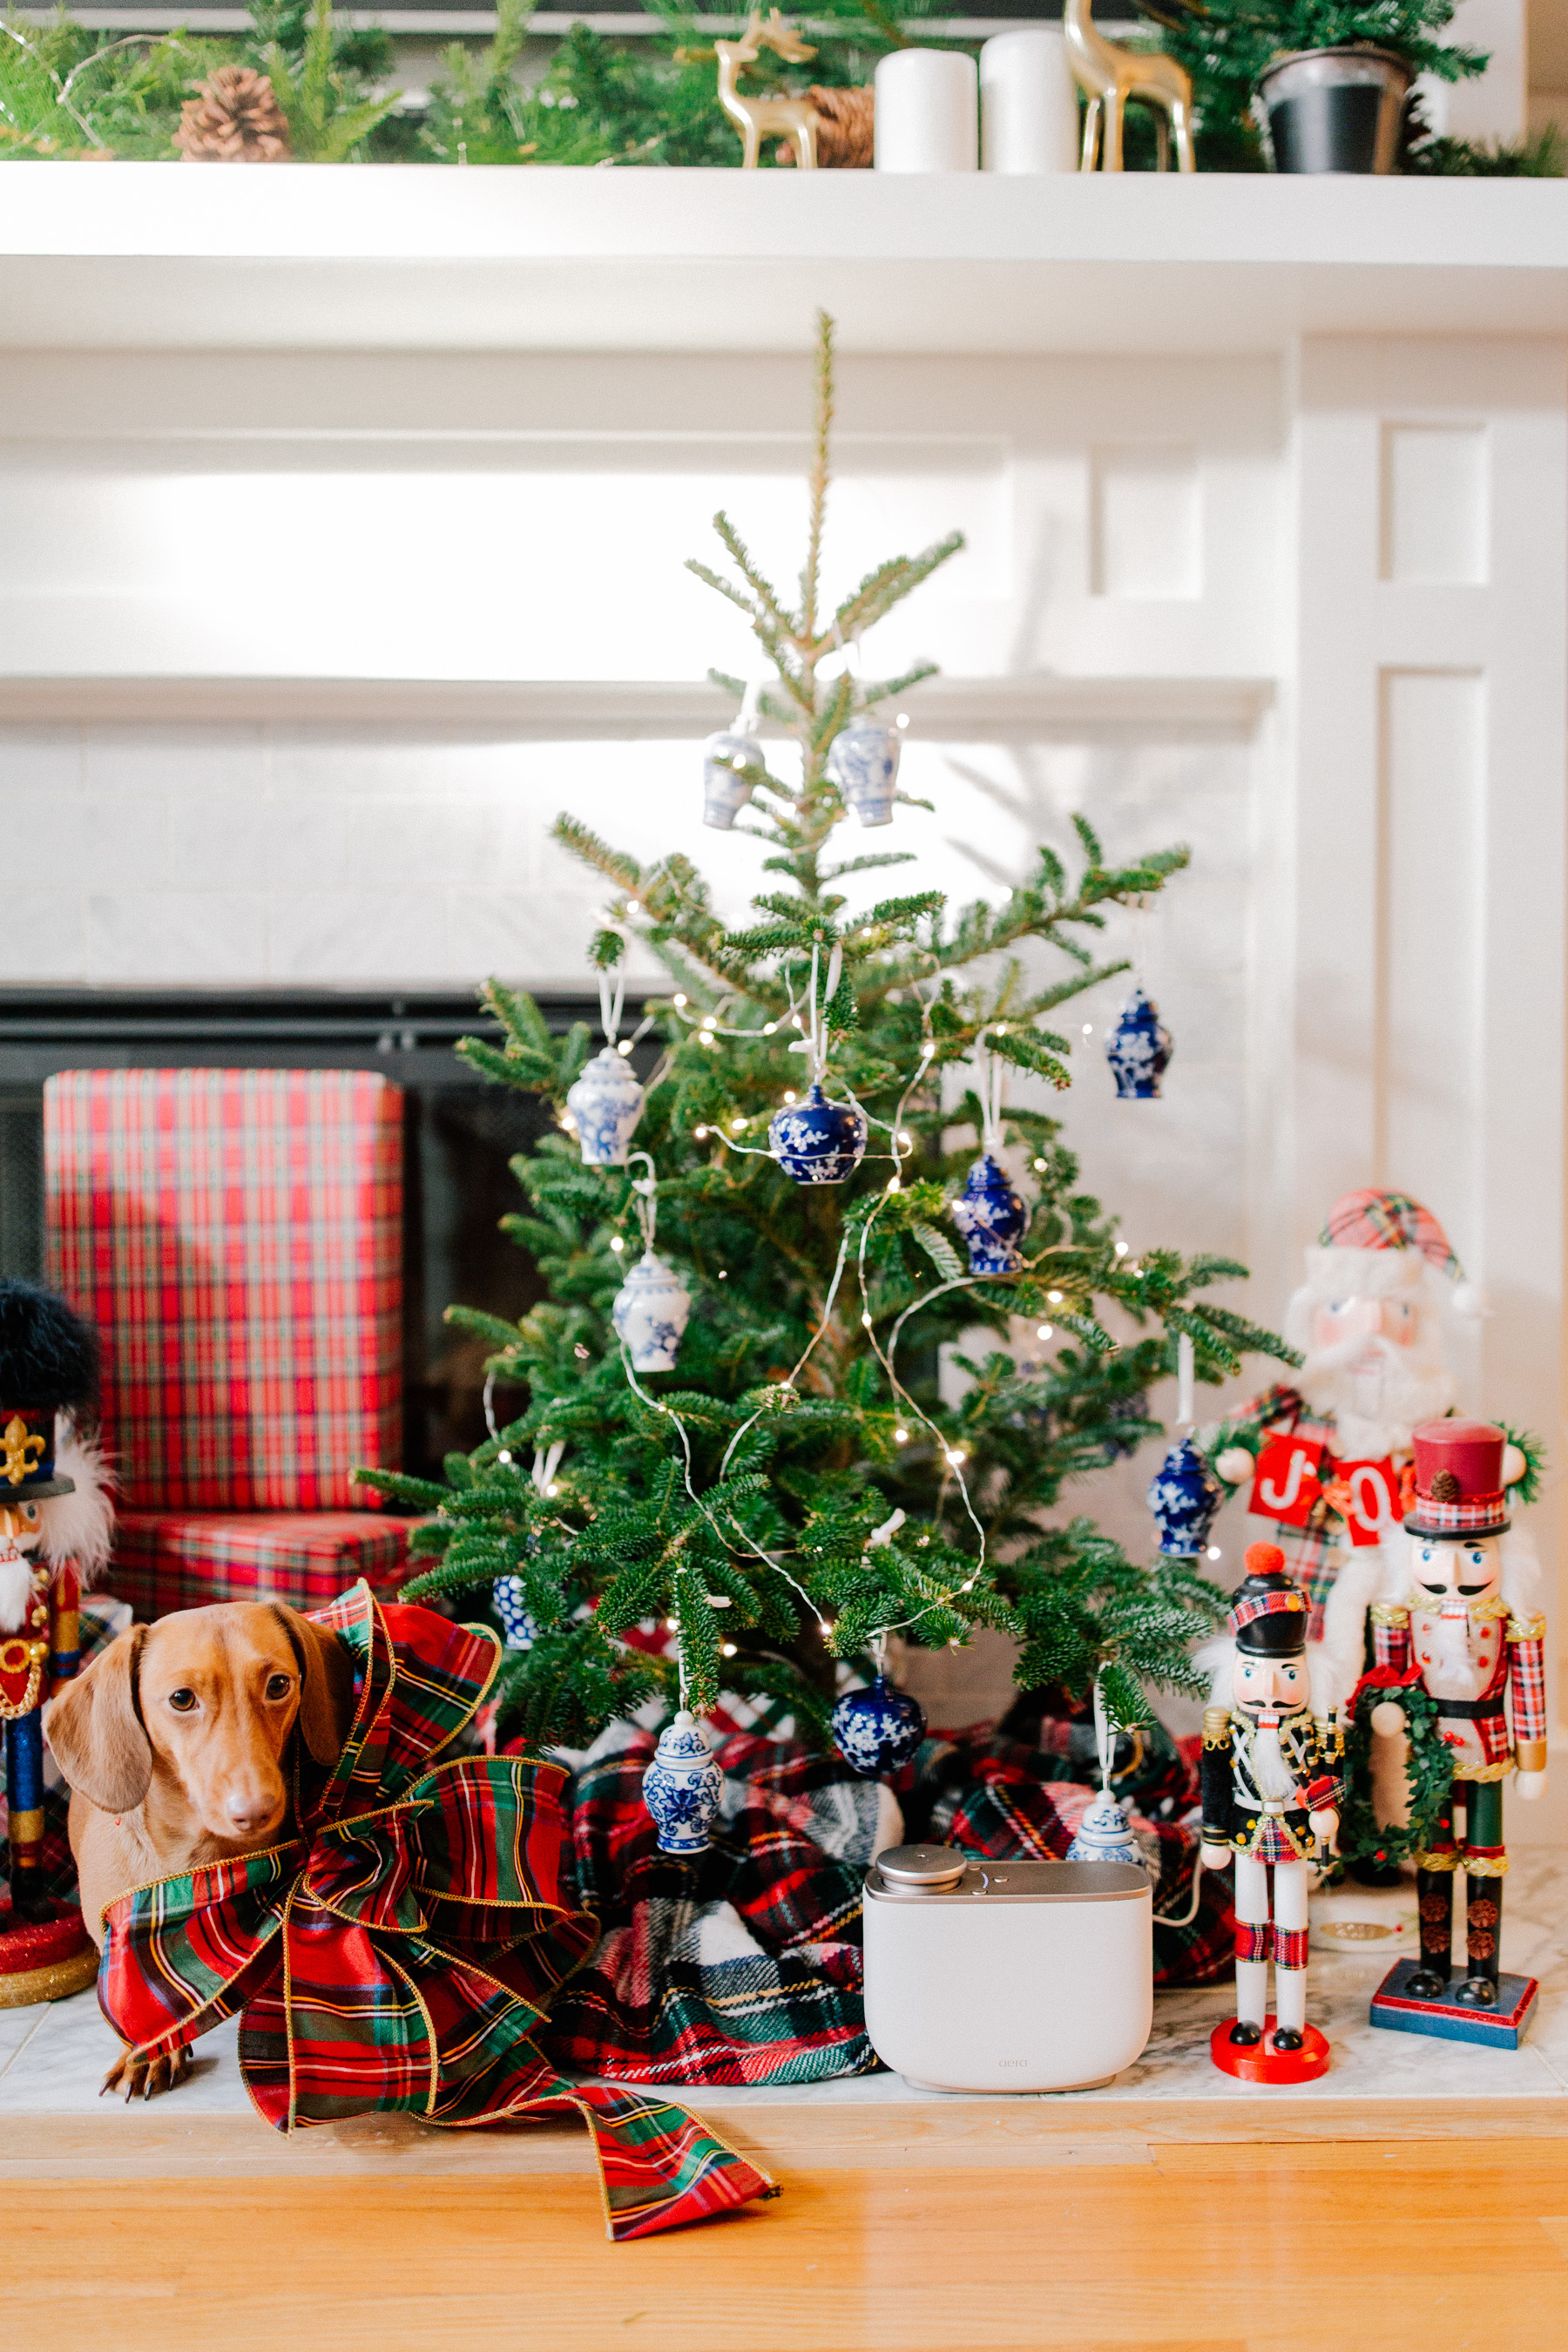 Preppy Home Gift Guide